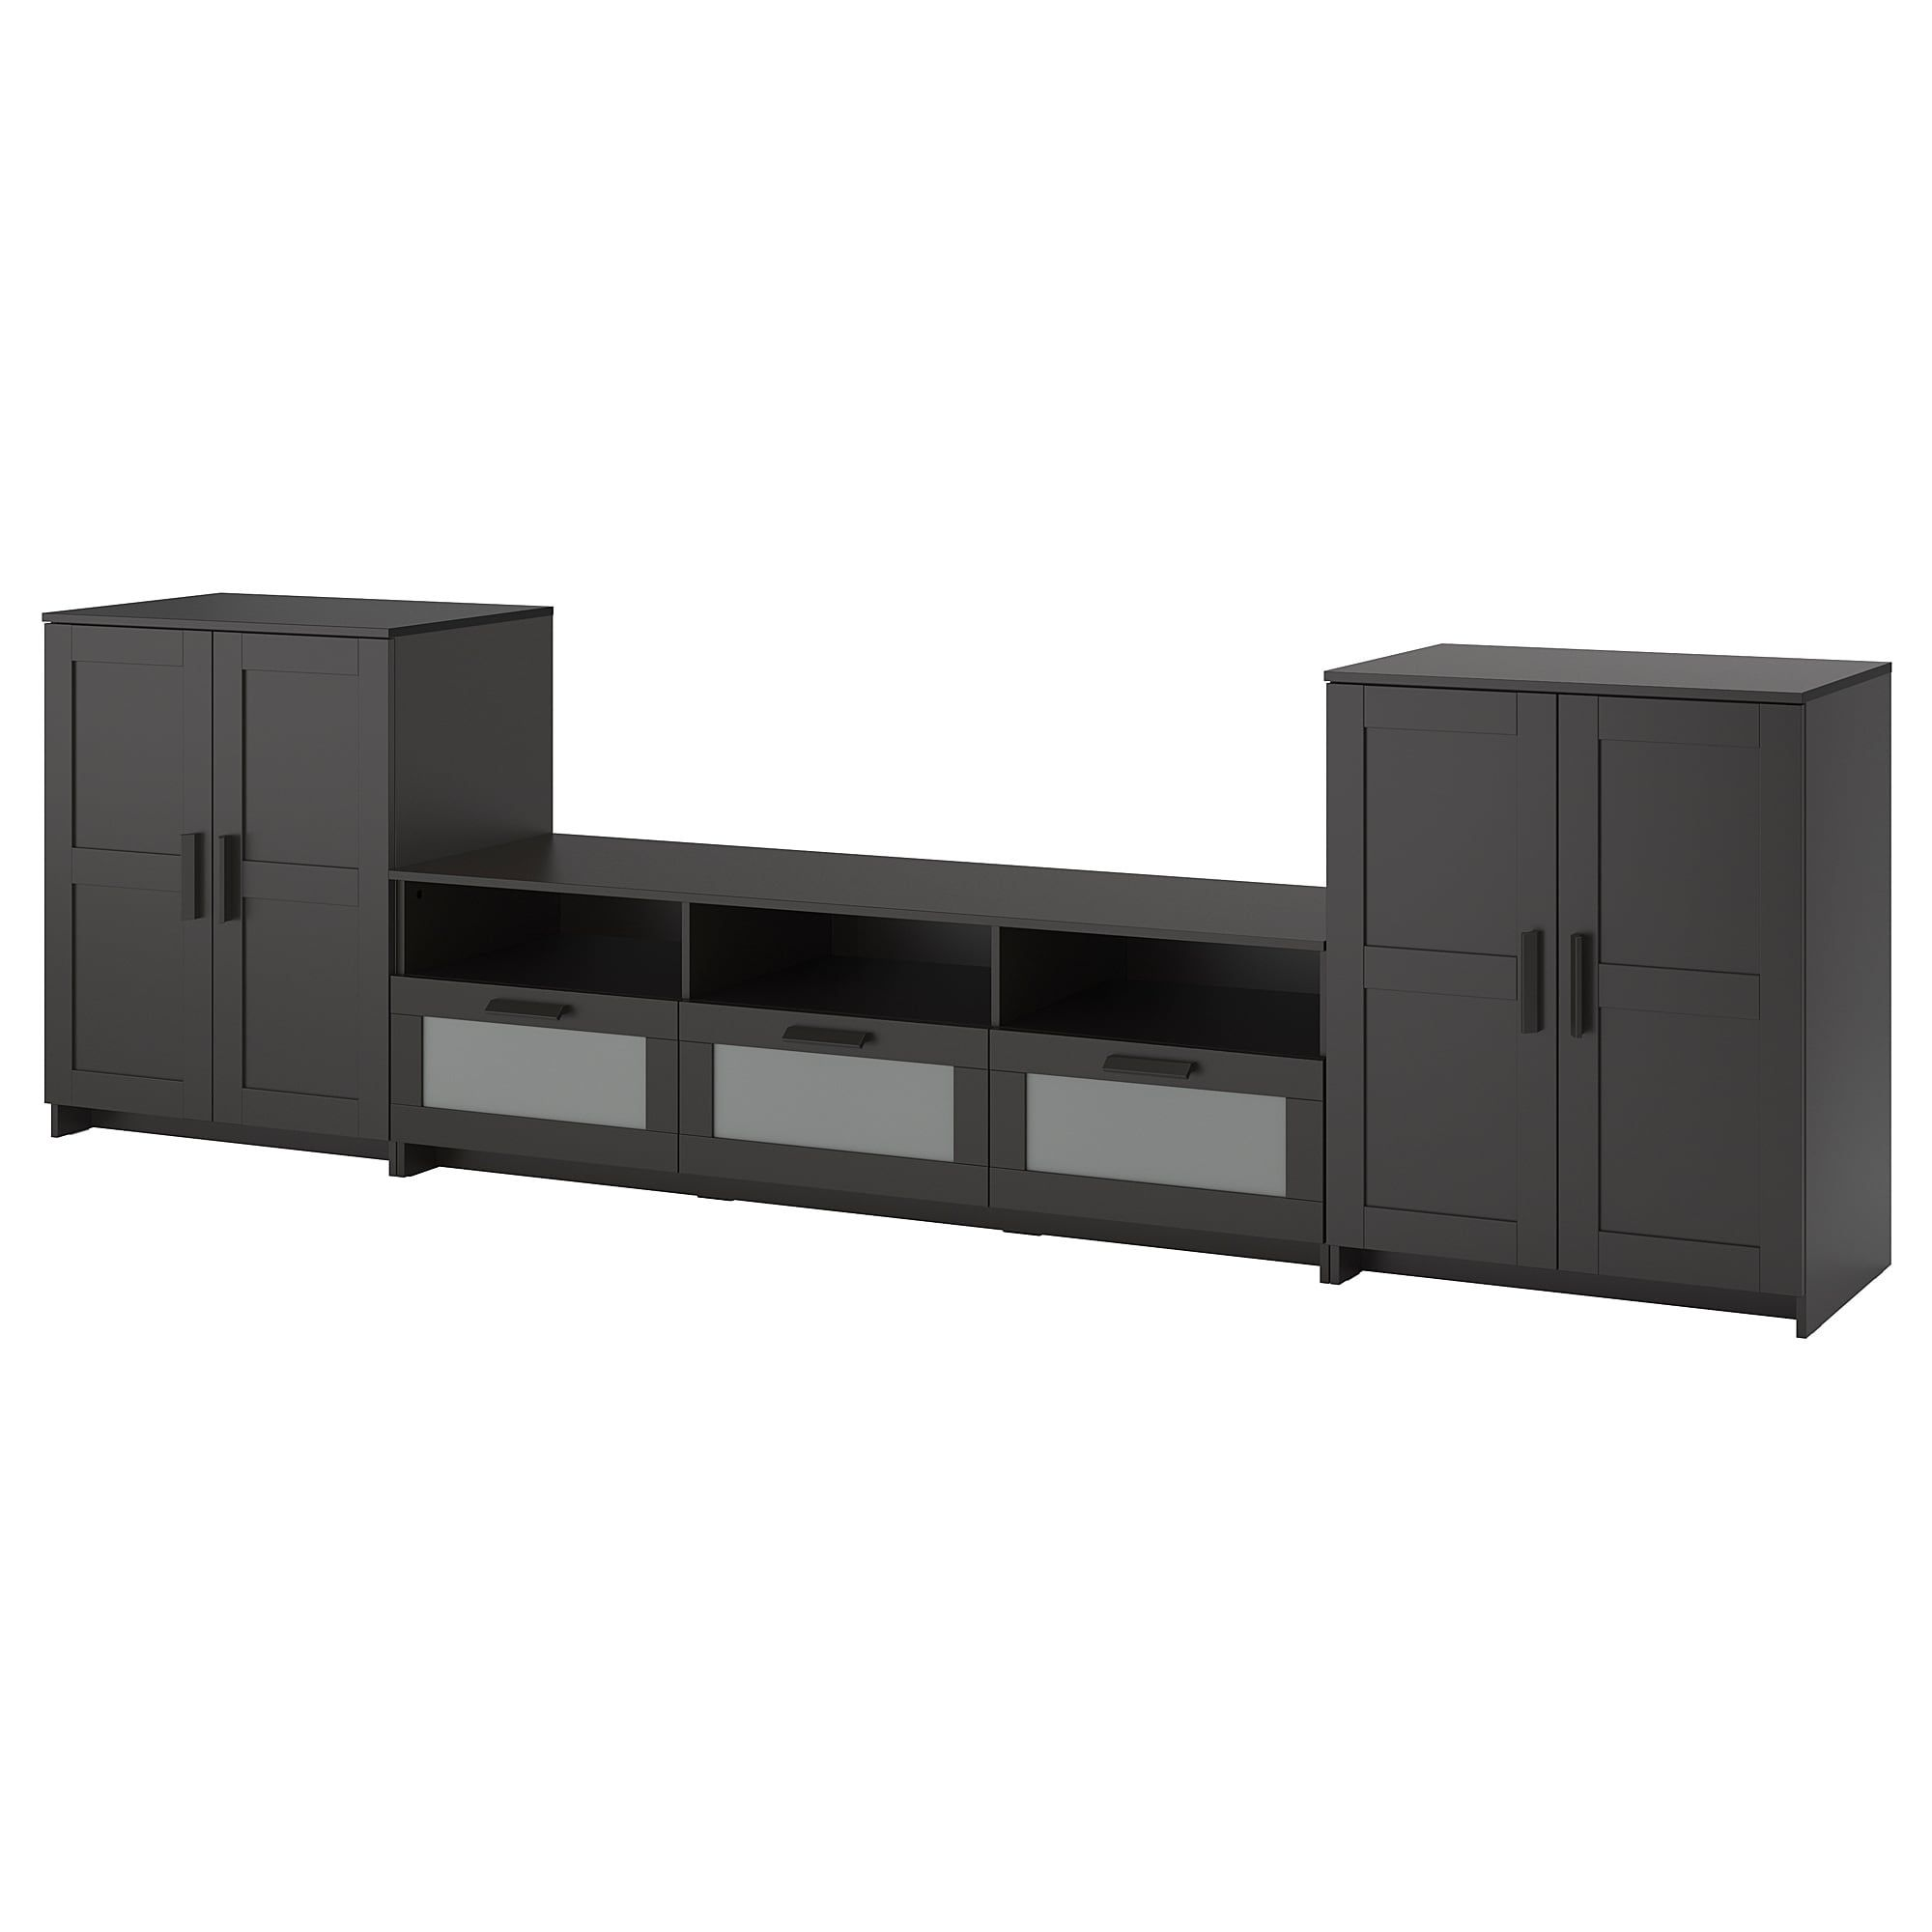 Ikea Glasregal Schwarz Brimnes Tv Möbel Kombination Schwarz In 2019 Products Tv